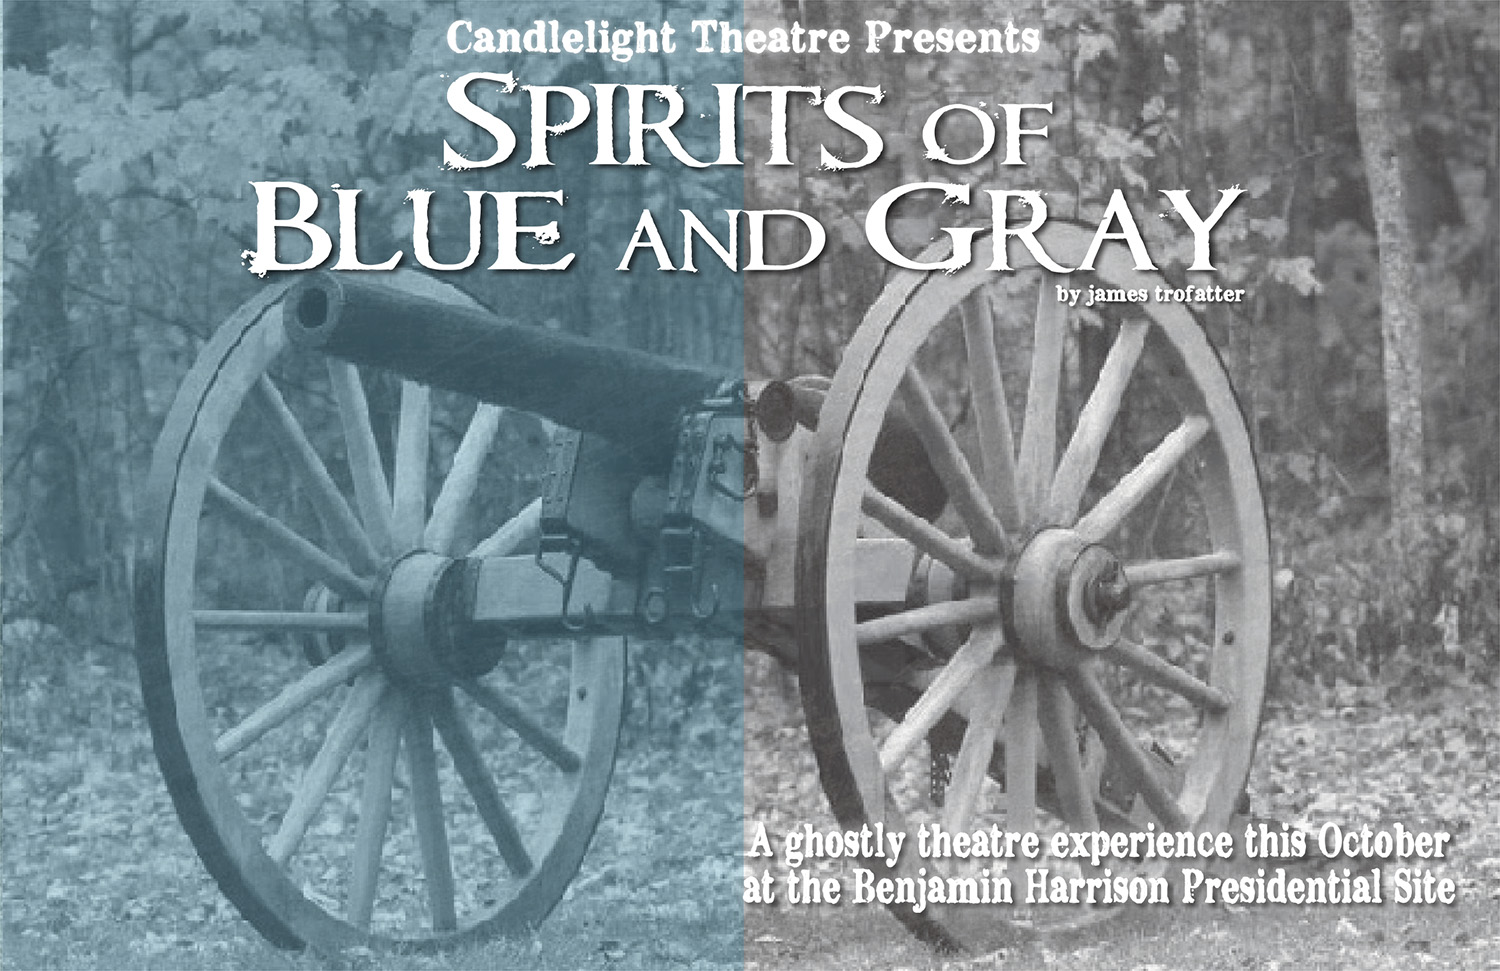 Black and white photographic image of a civil war era cannon. Text reads: Spirits of Blue and Gray